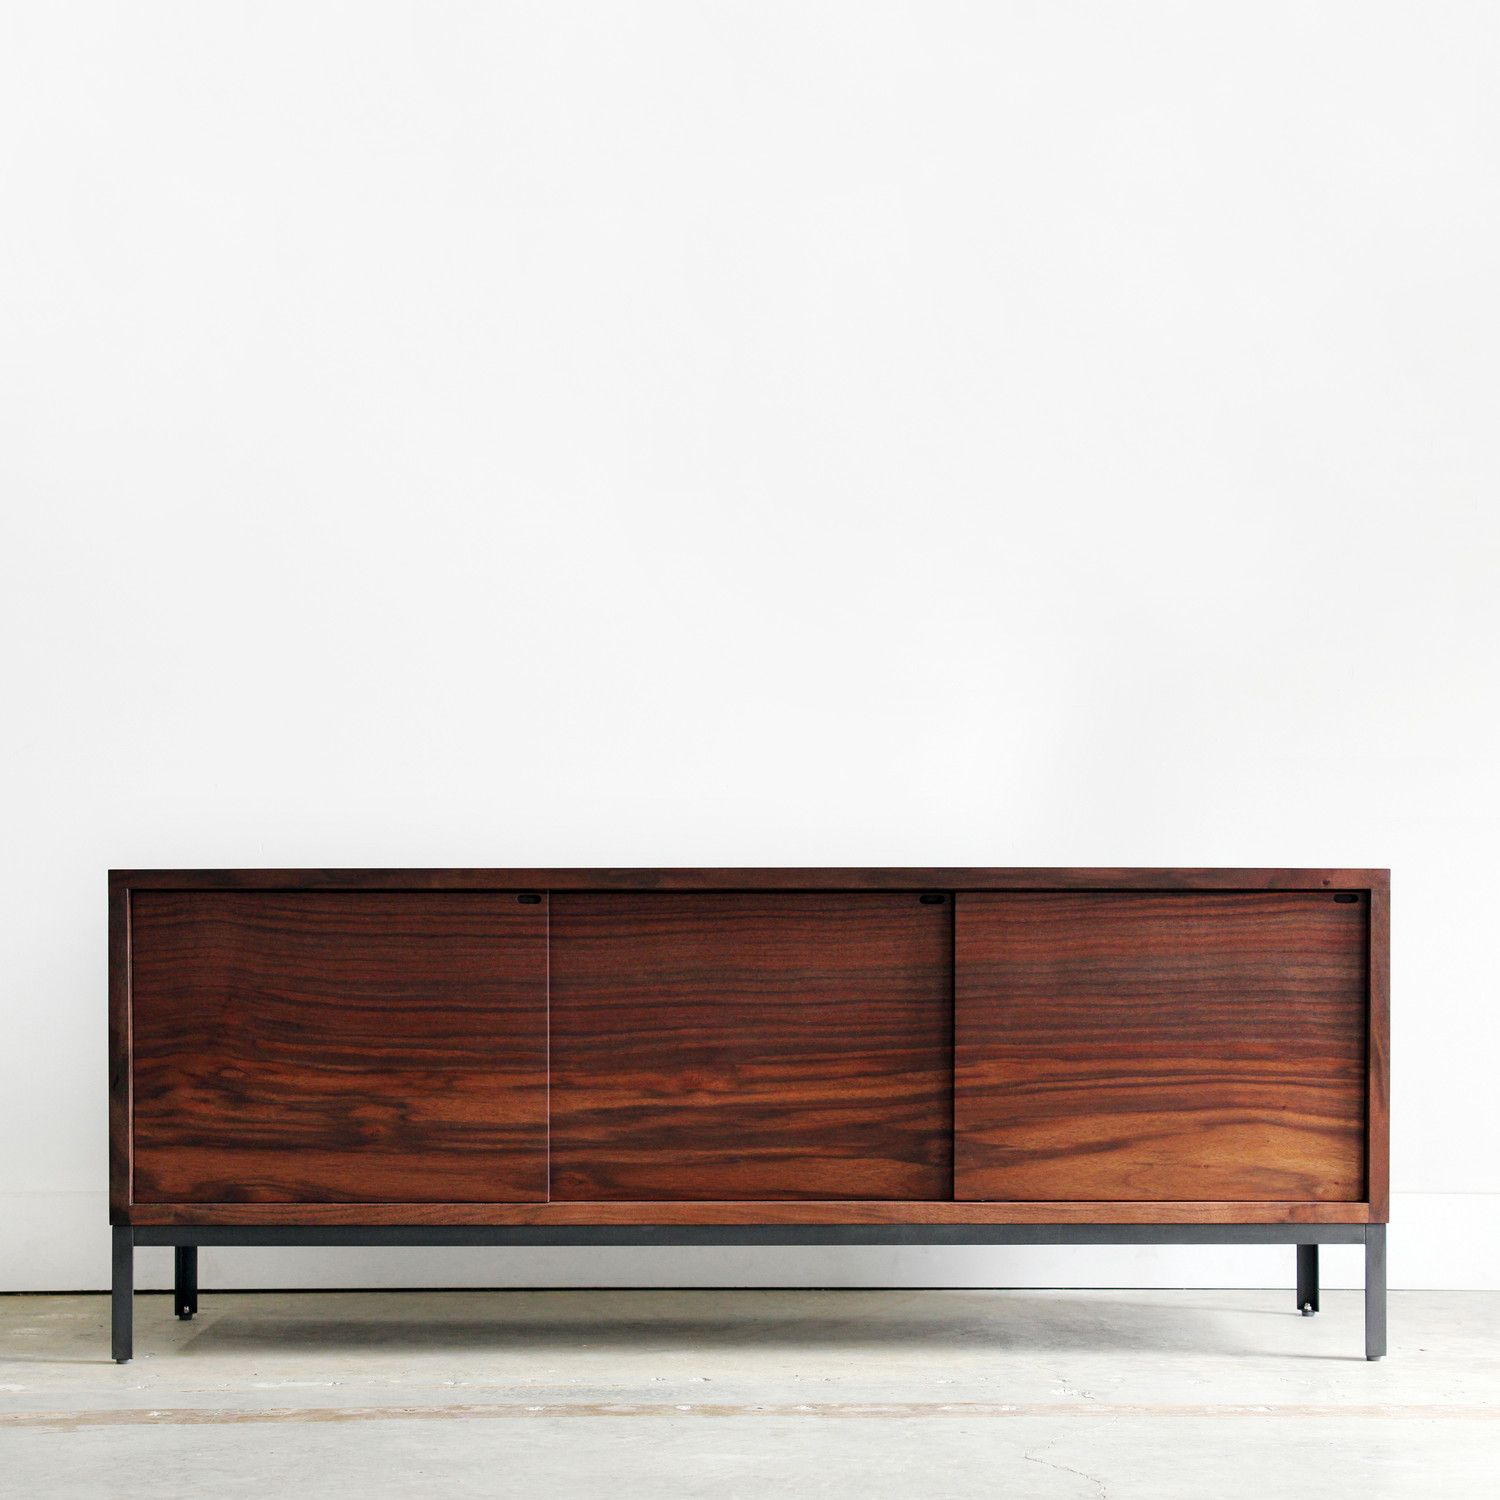 i bought my extremely similar mid century credenza in excellent condition i for 50 00 at a garage sale